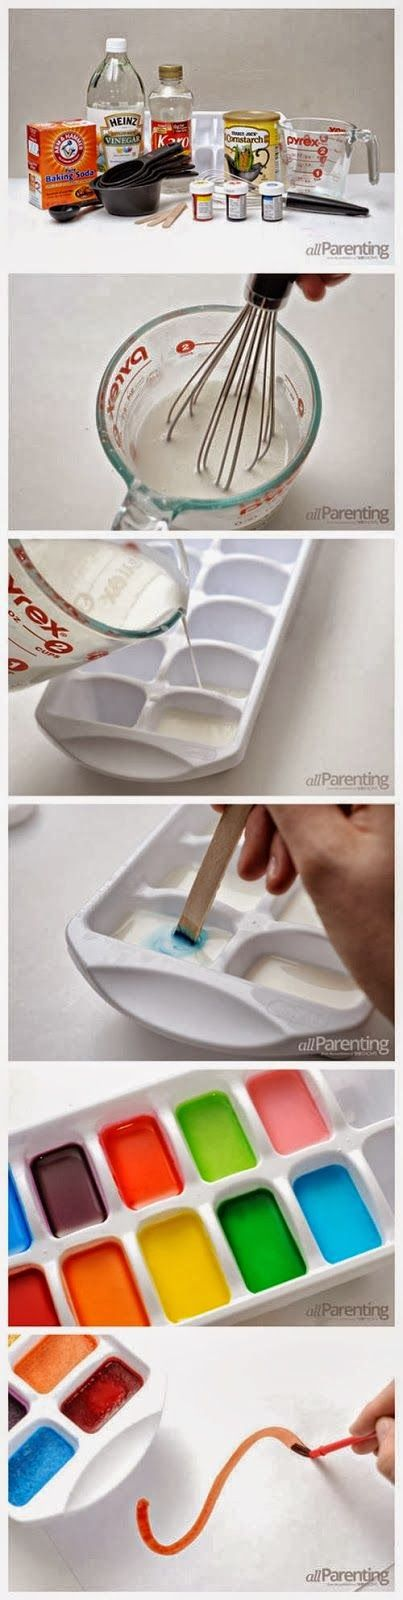 Homemade Water Color Paints: What you'll need Baking soda Vinegar Cornstarch Corn syrup Spouted mixing bowl Measuring cups Whisk Food coloring Ice cube tray